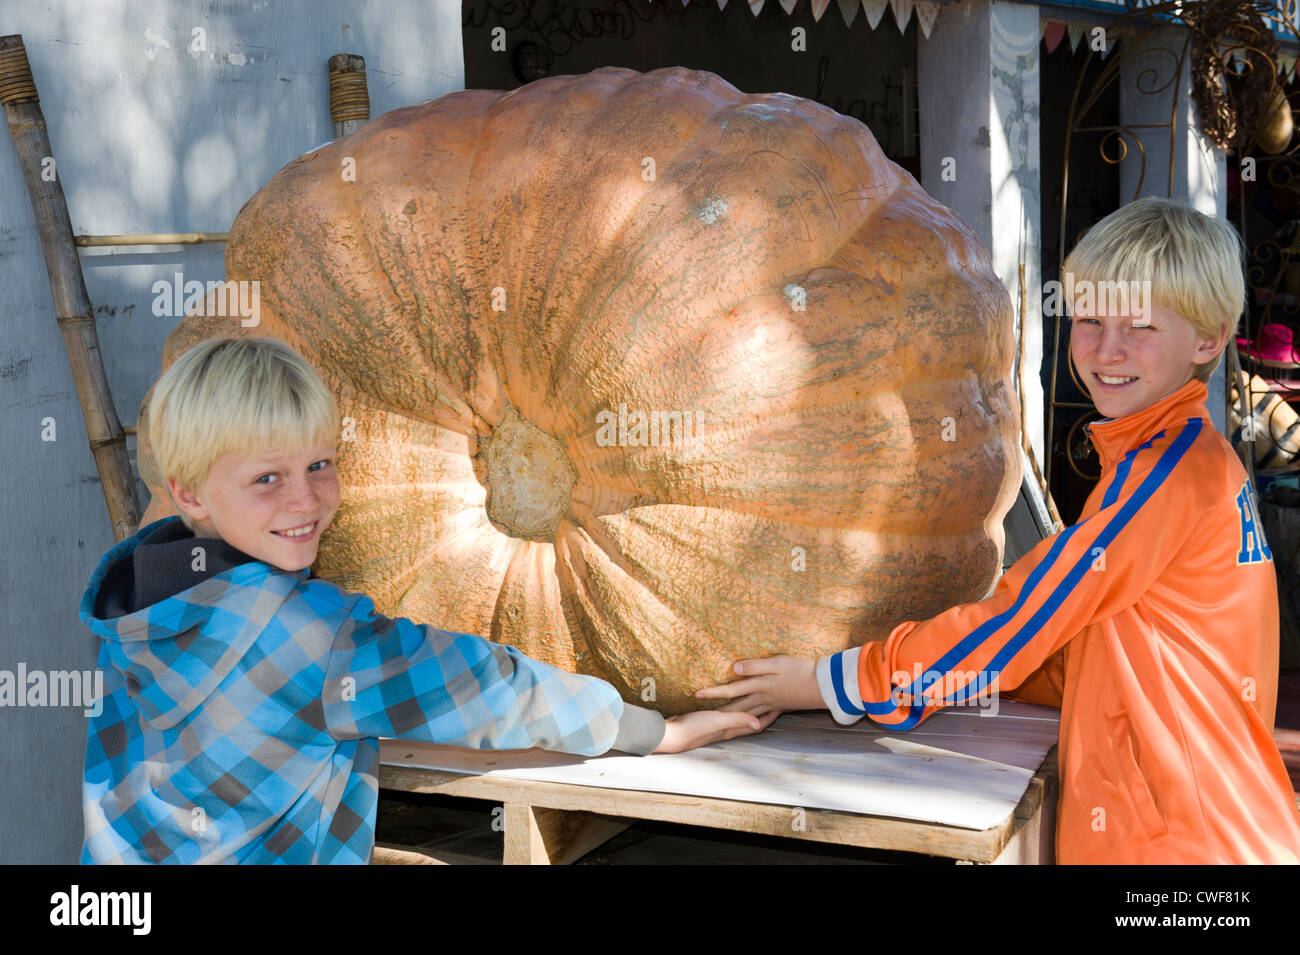 Children admire a giant pumpkin at a farmstall in Worcester, Western Cape, South Africa - Stock Image